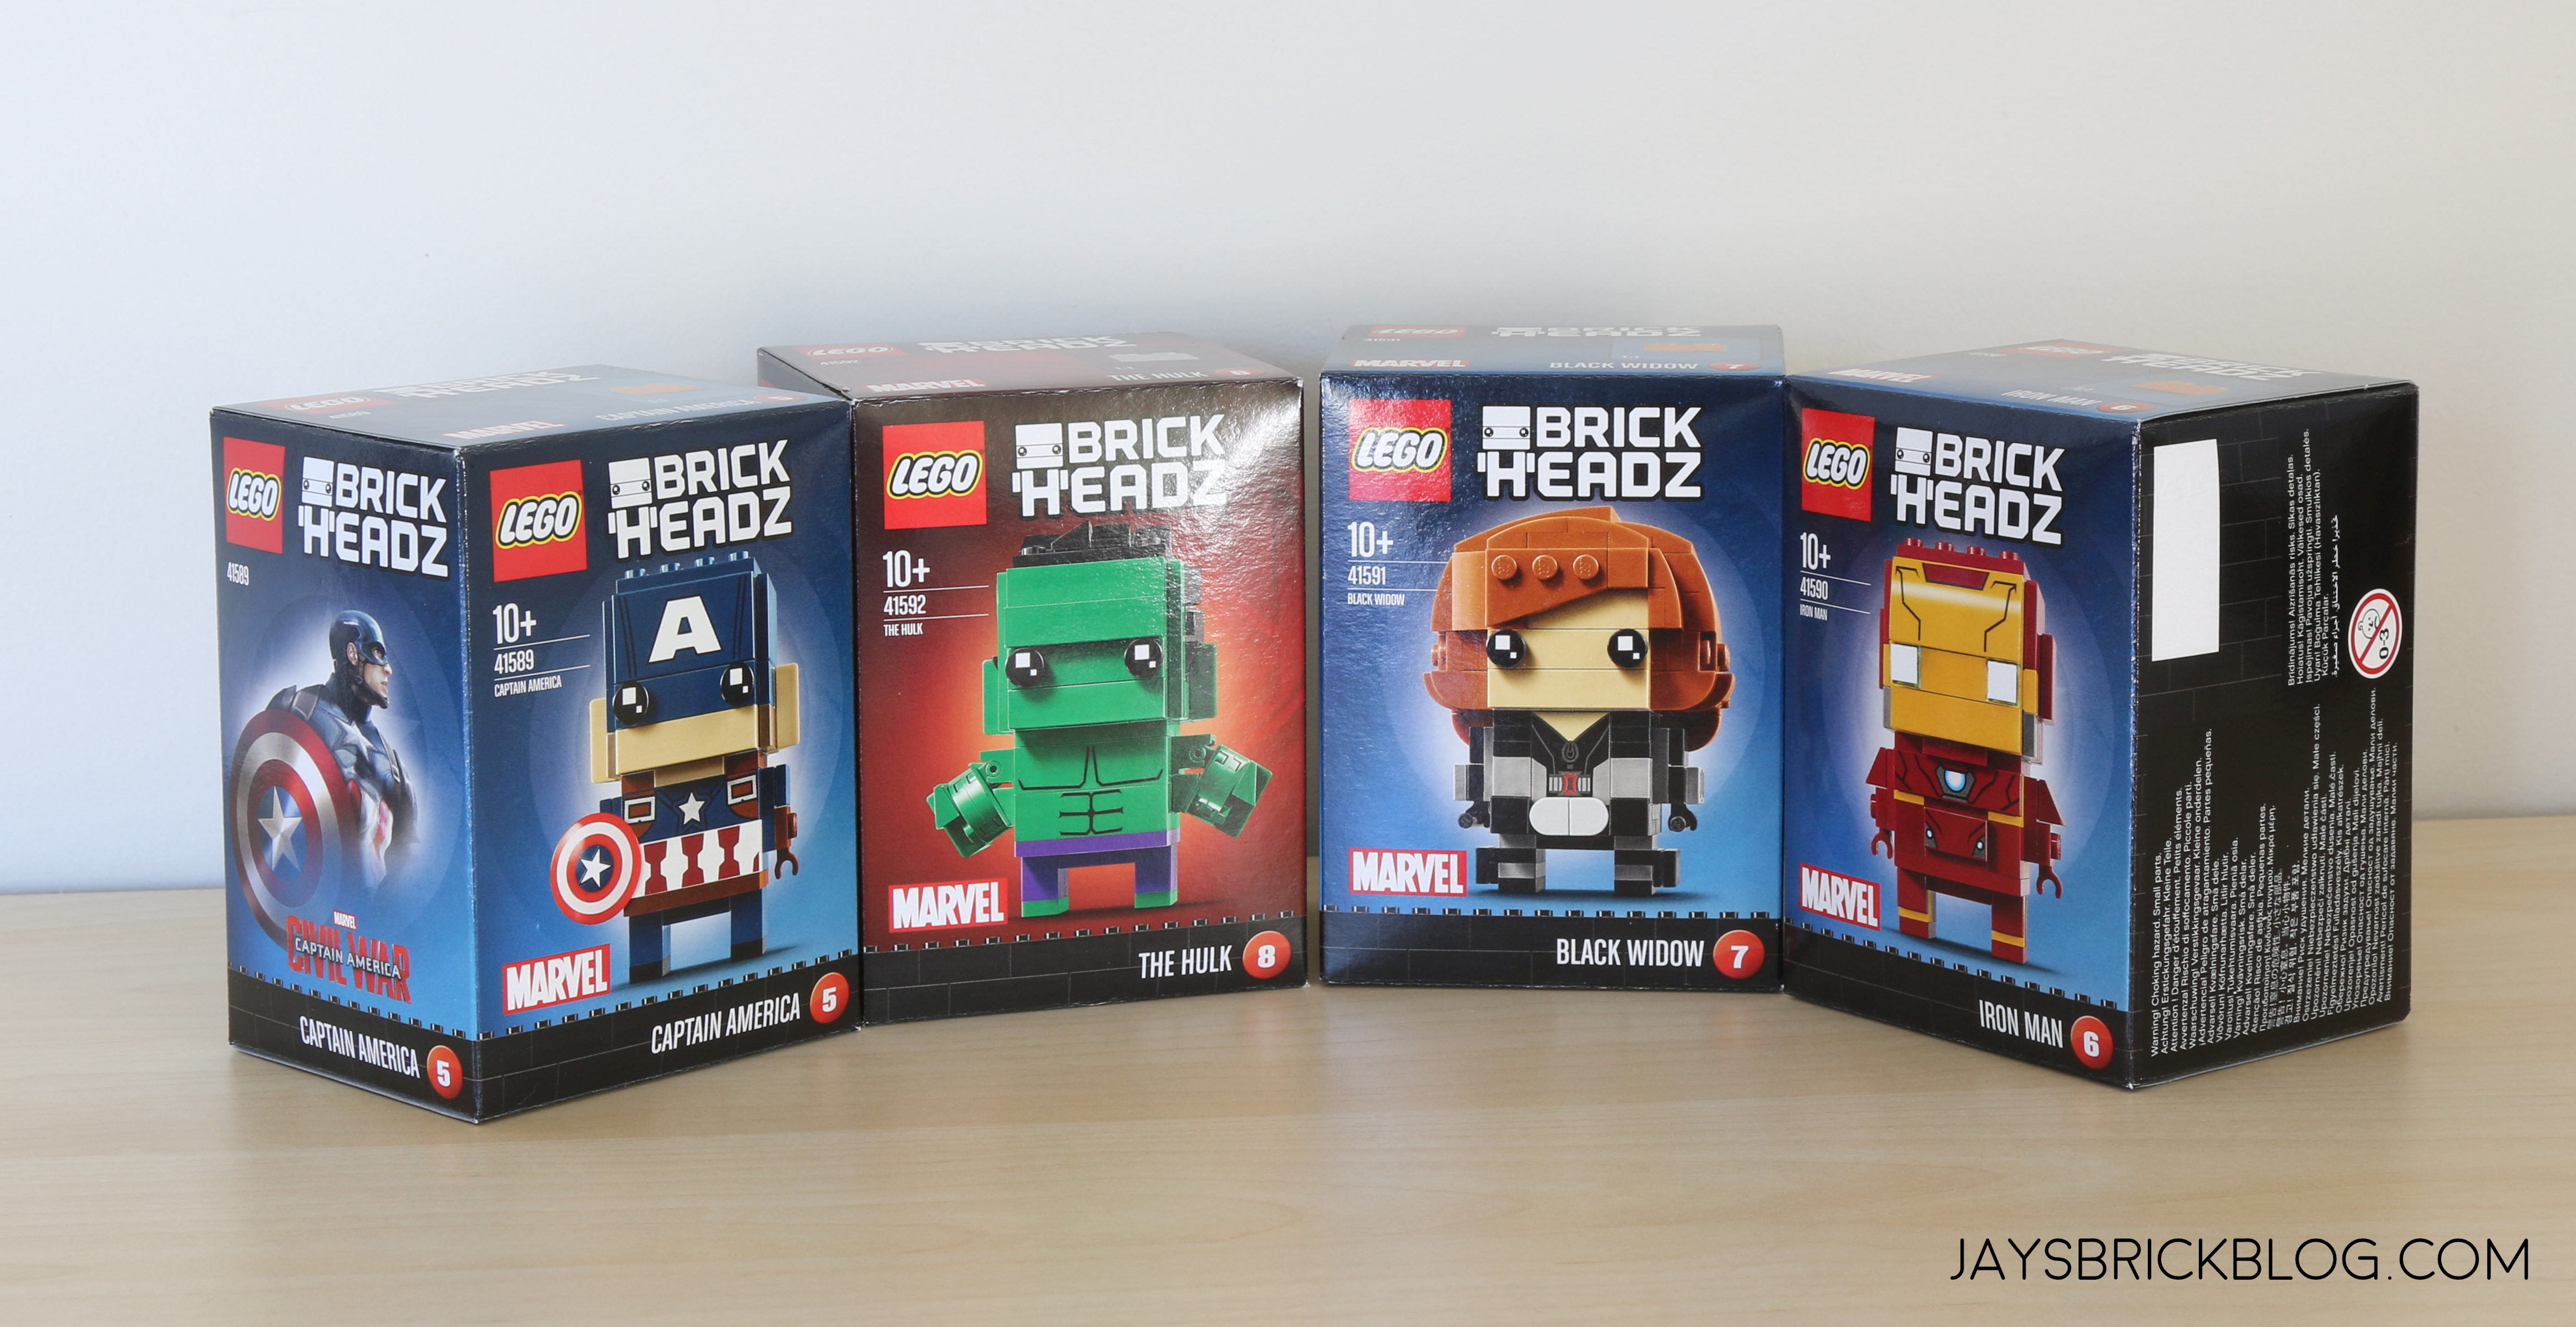 Brickheadz is one of LEGO s more exciting new themes this year. So far 75dc6fac3f2a